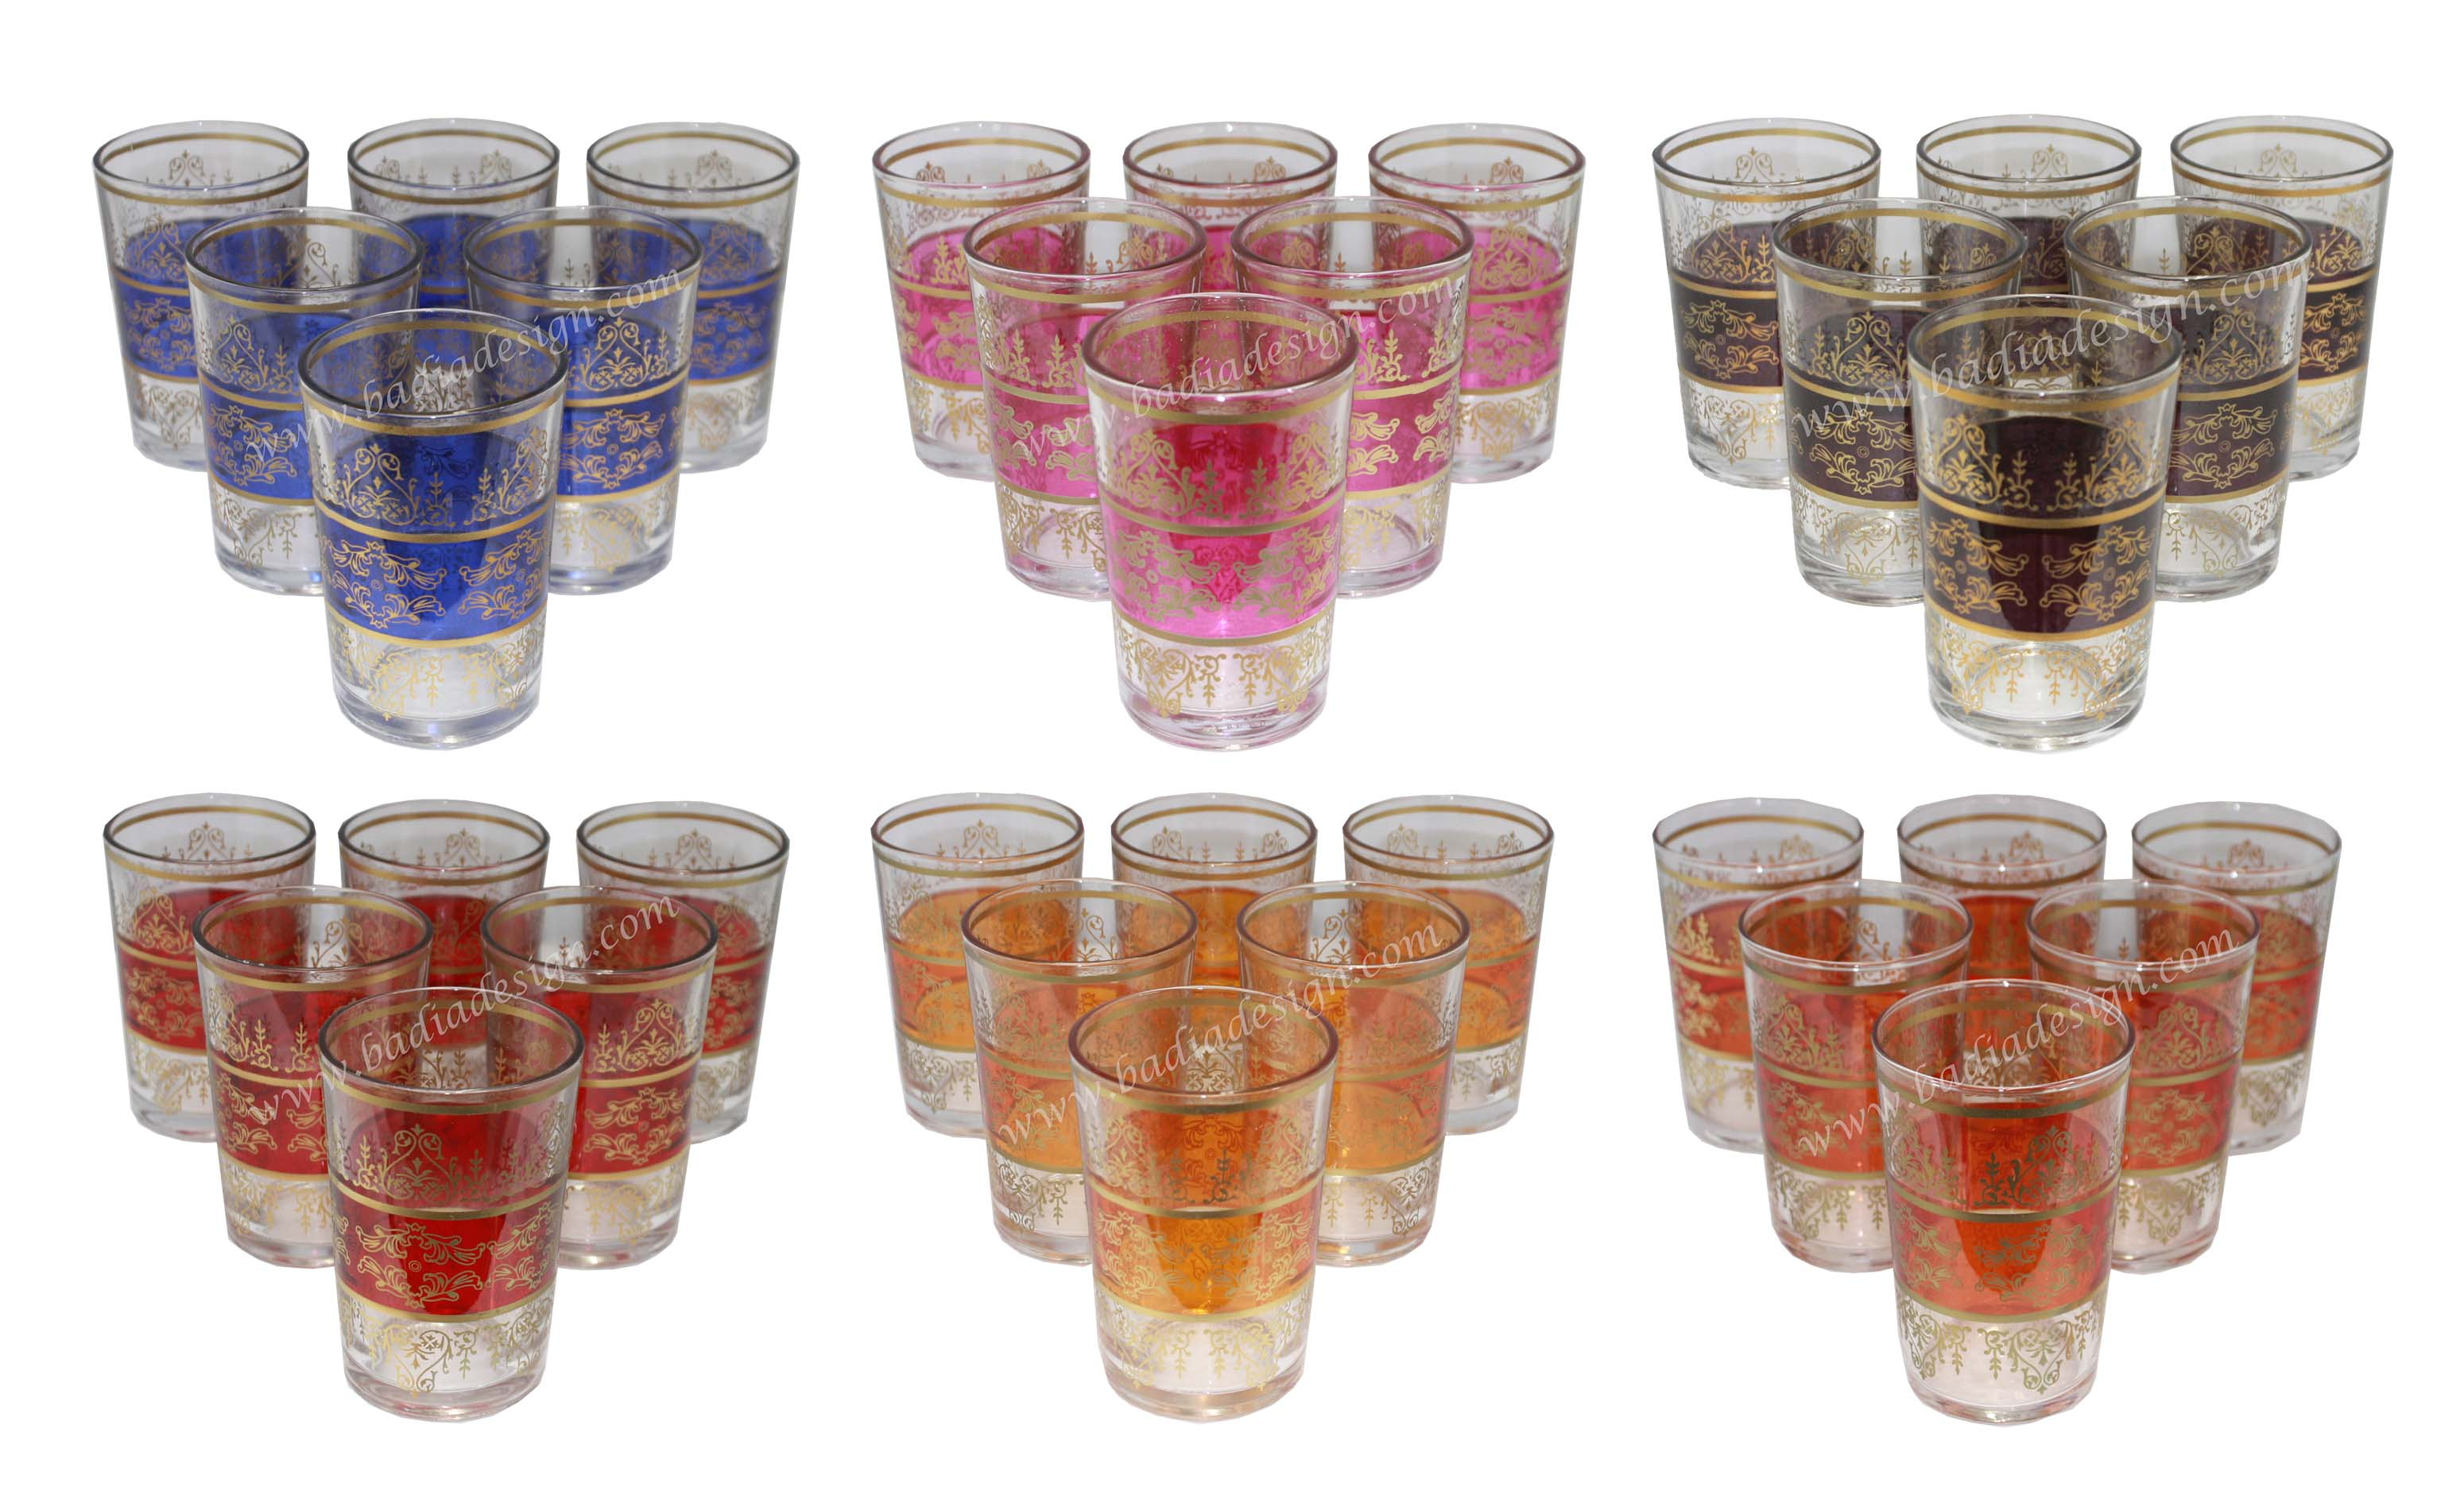 moroccan-tea-glasses-tg010.jpg